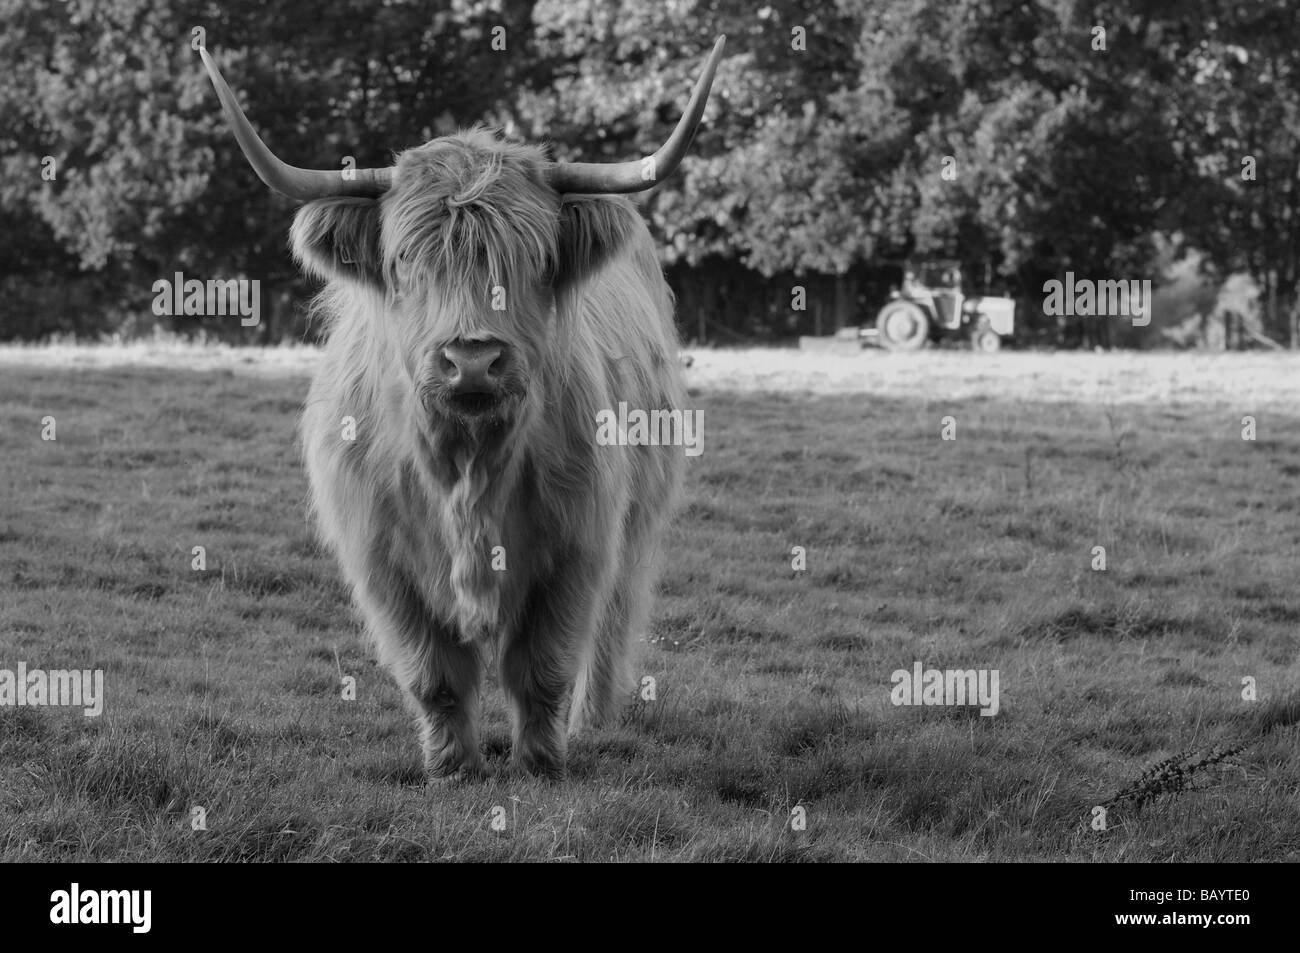 Brown Inquisitive Highland Cow In B&W - Stock Image